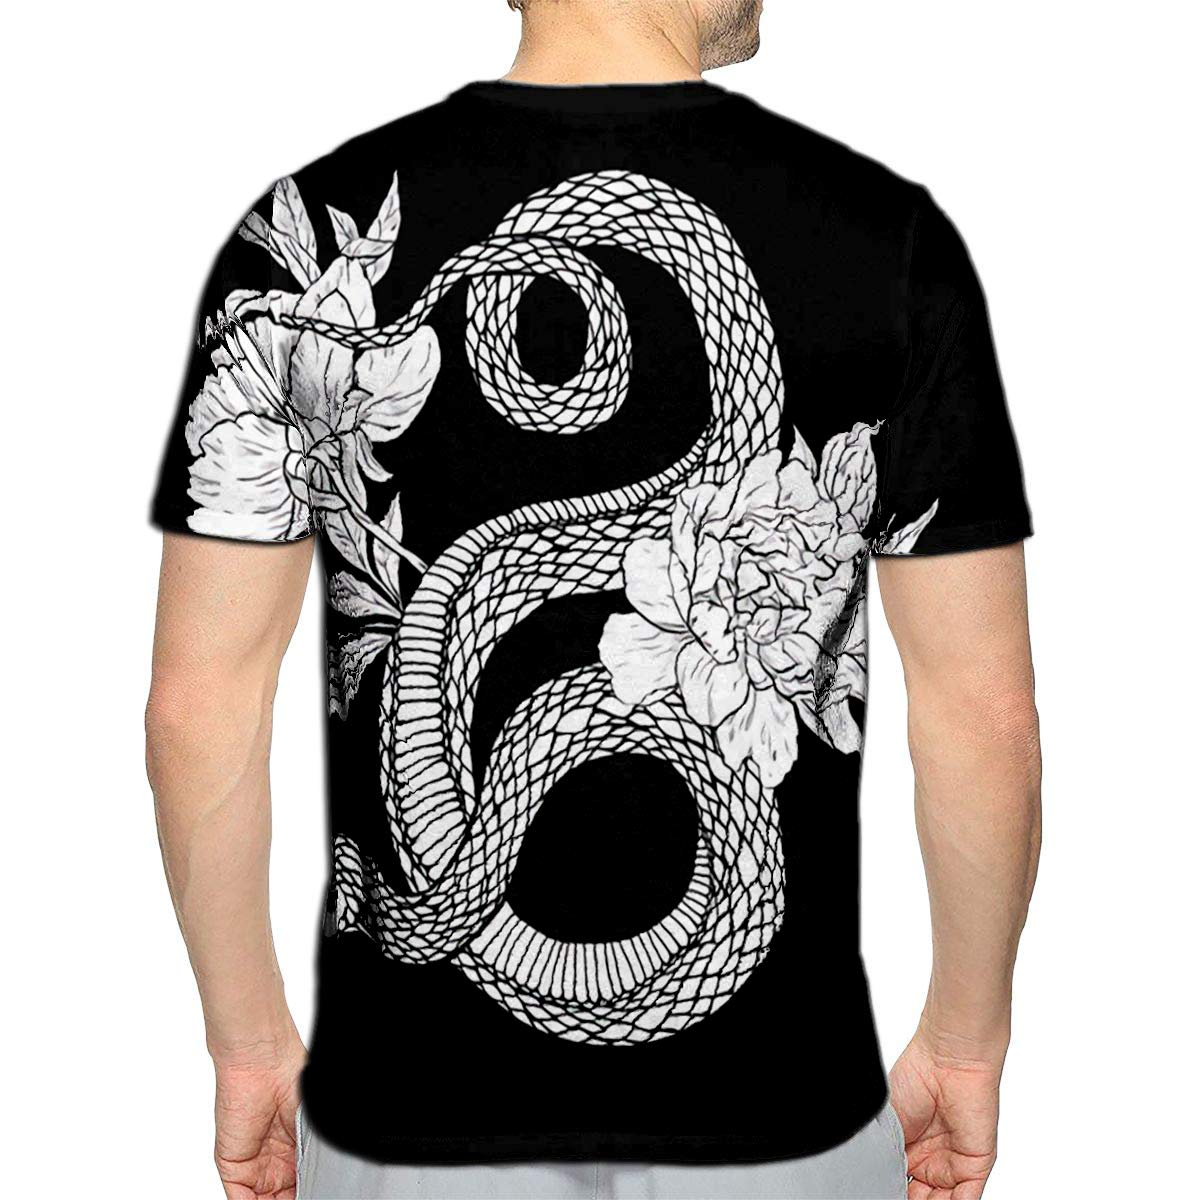 3D Printed T-Shirts Vintage Art Short Sleeve Tops Tees